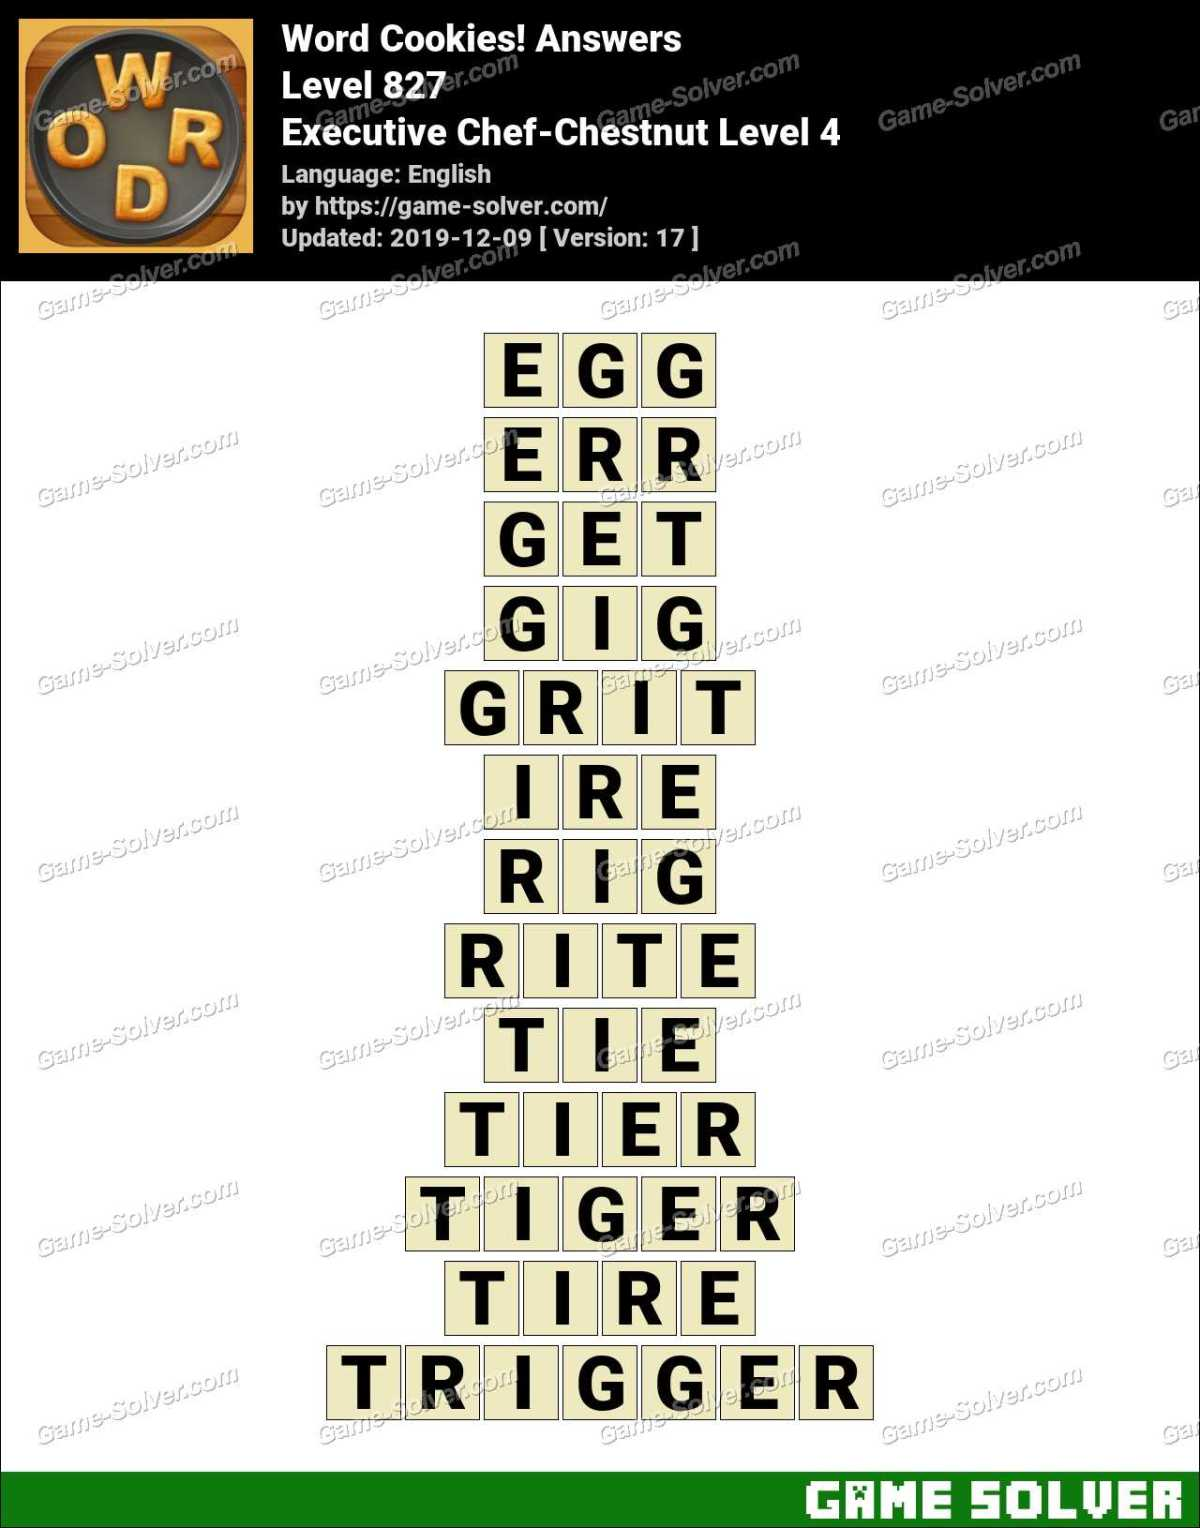 Word Cookies Executive Chef-Chestnut Level 4 Answers